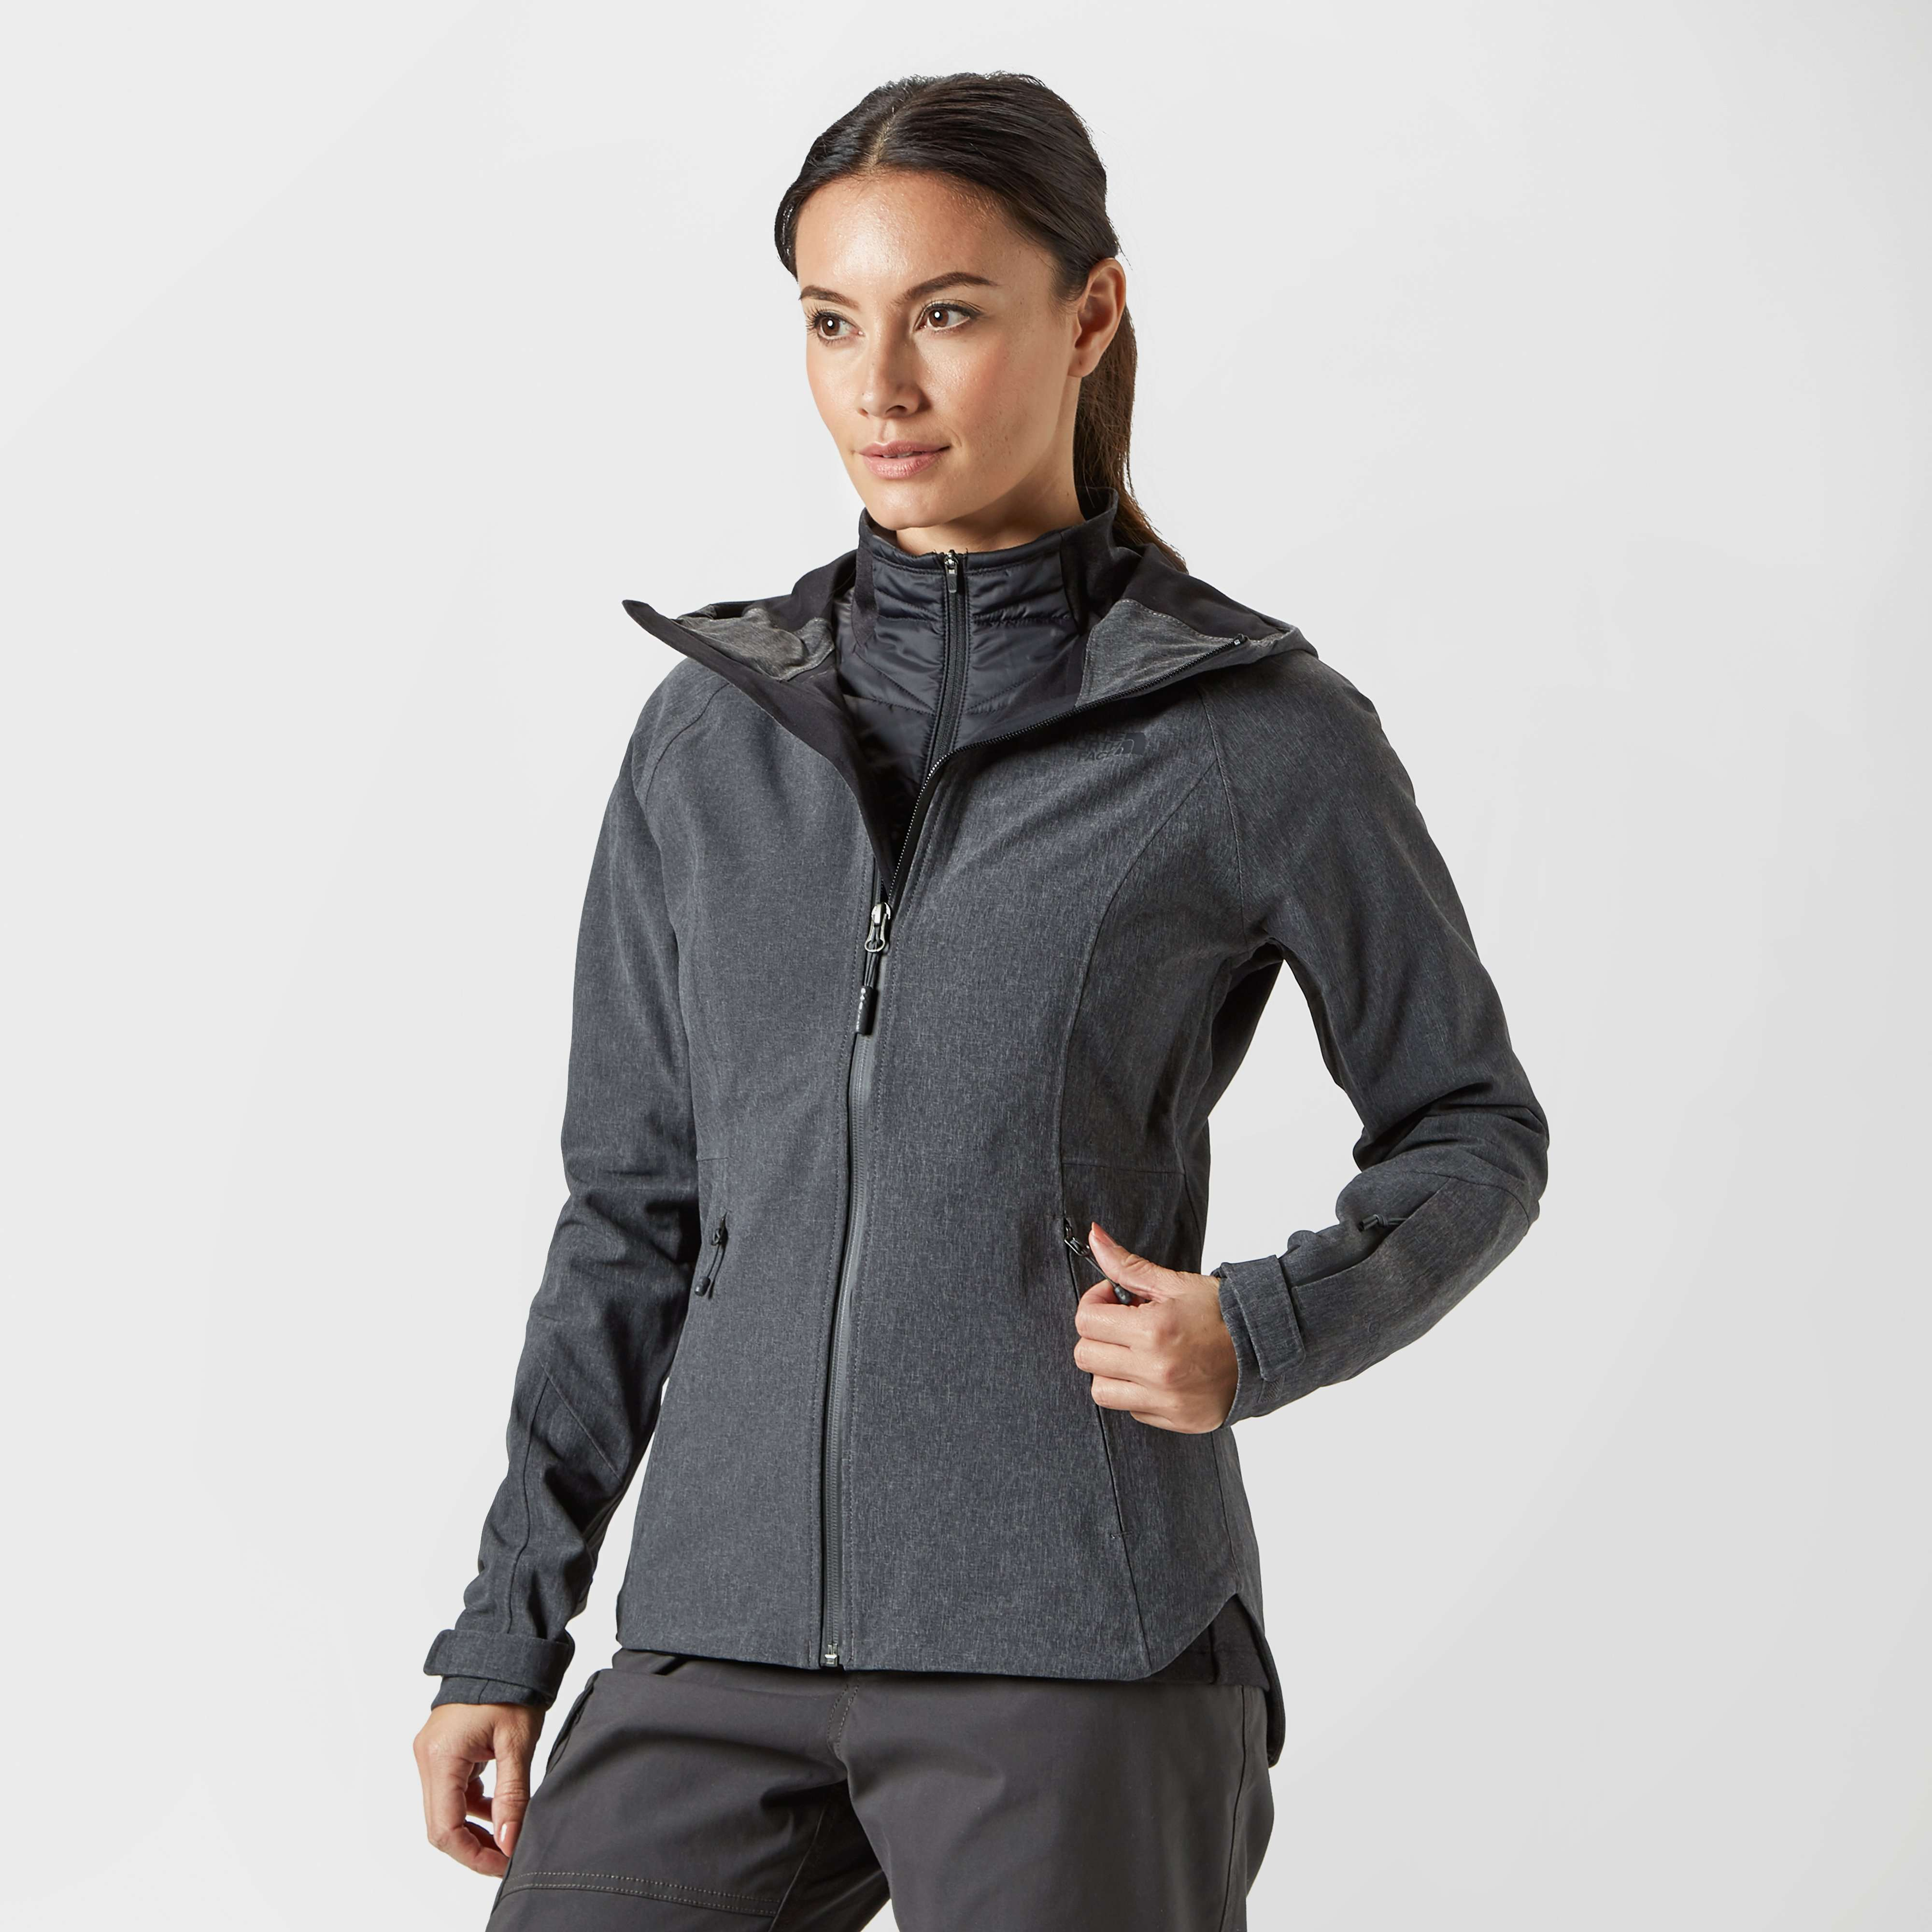 THE NORTH FACE Women's Apex Flex GORE-TEX® Softshell Jacket